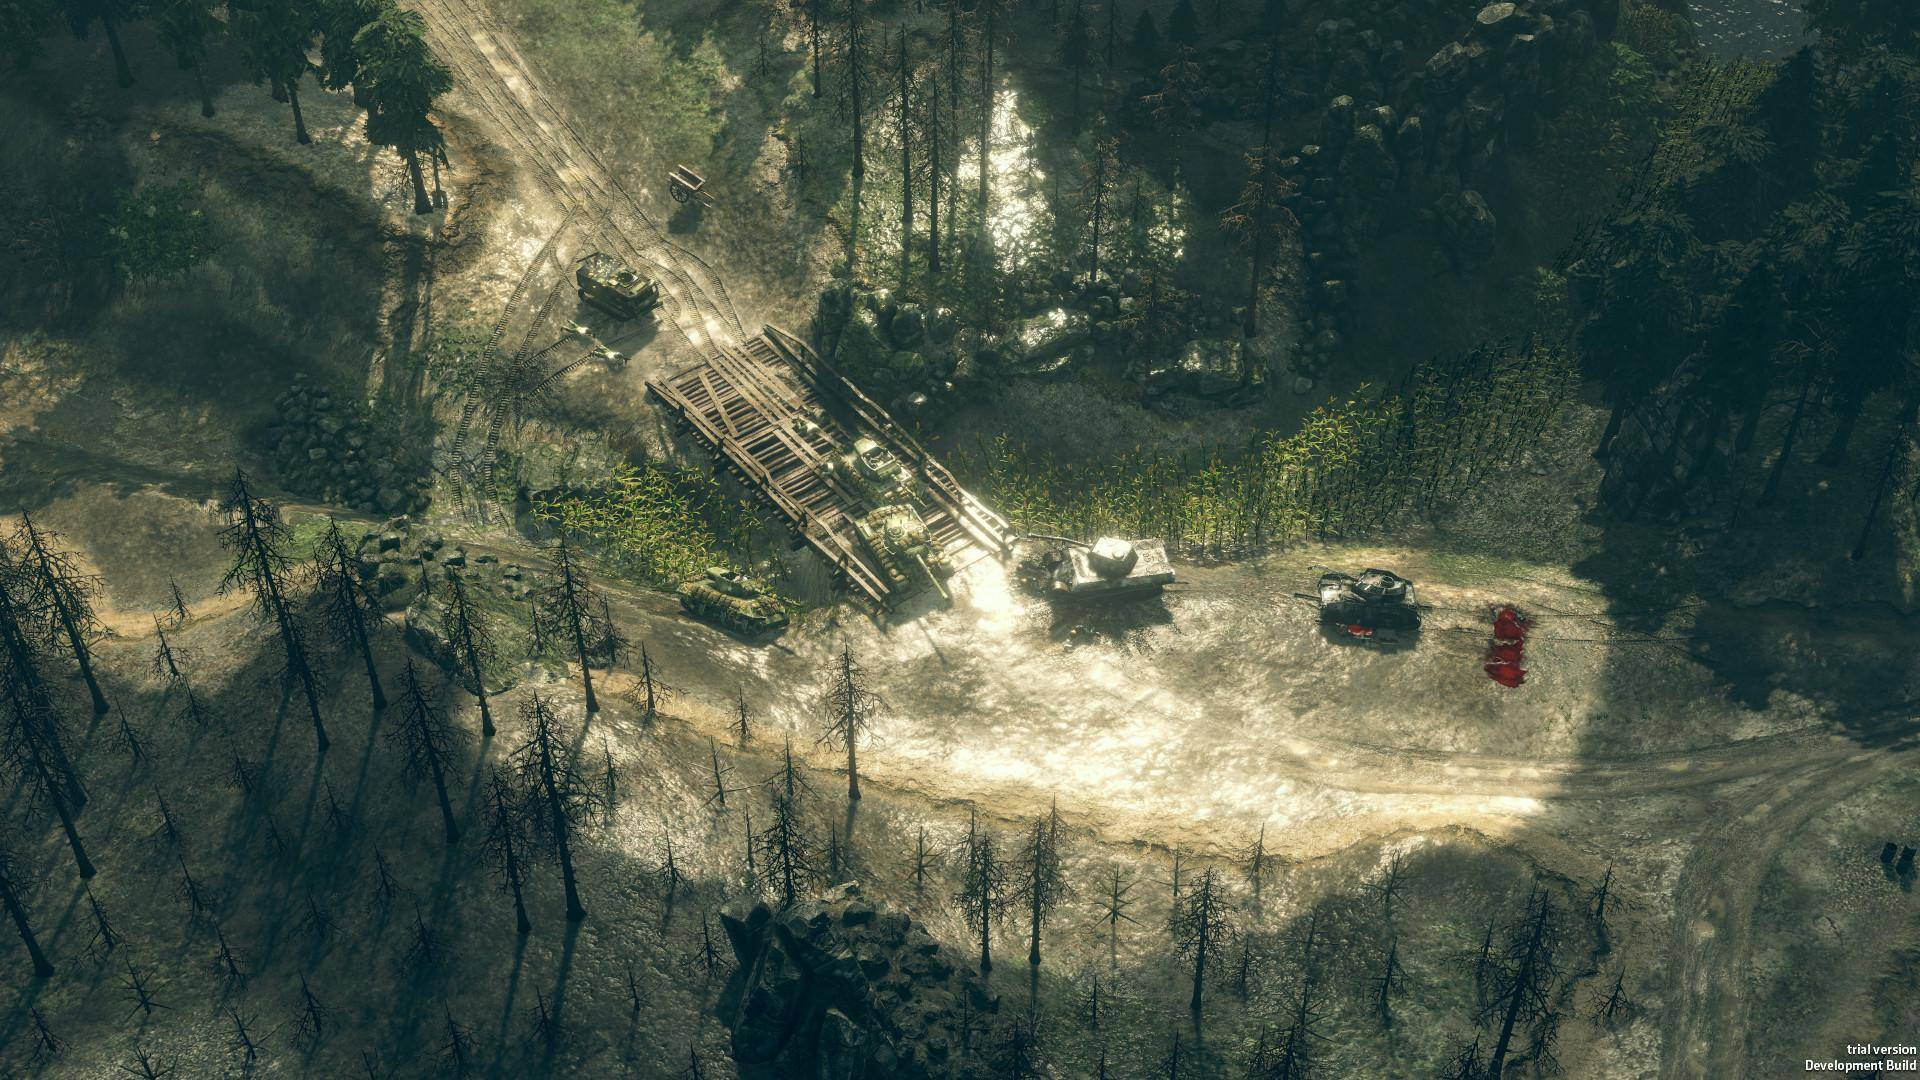 download Tigers in the Mud: The